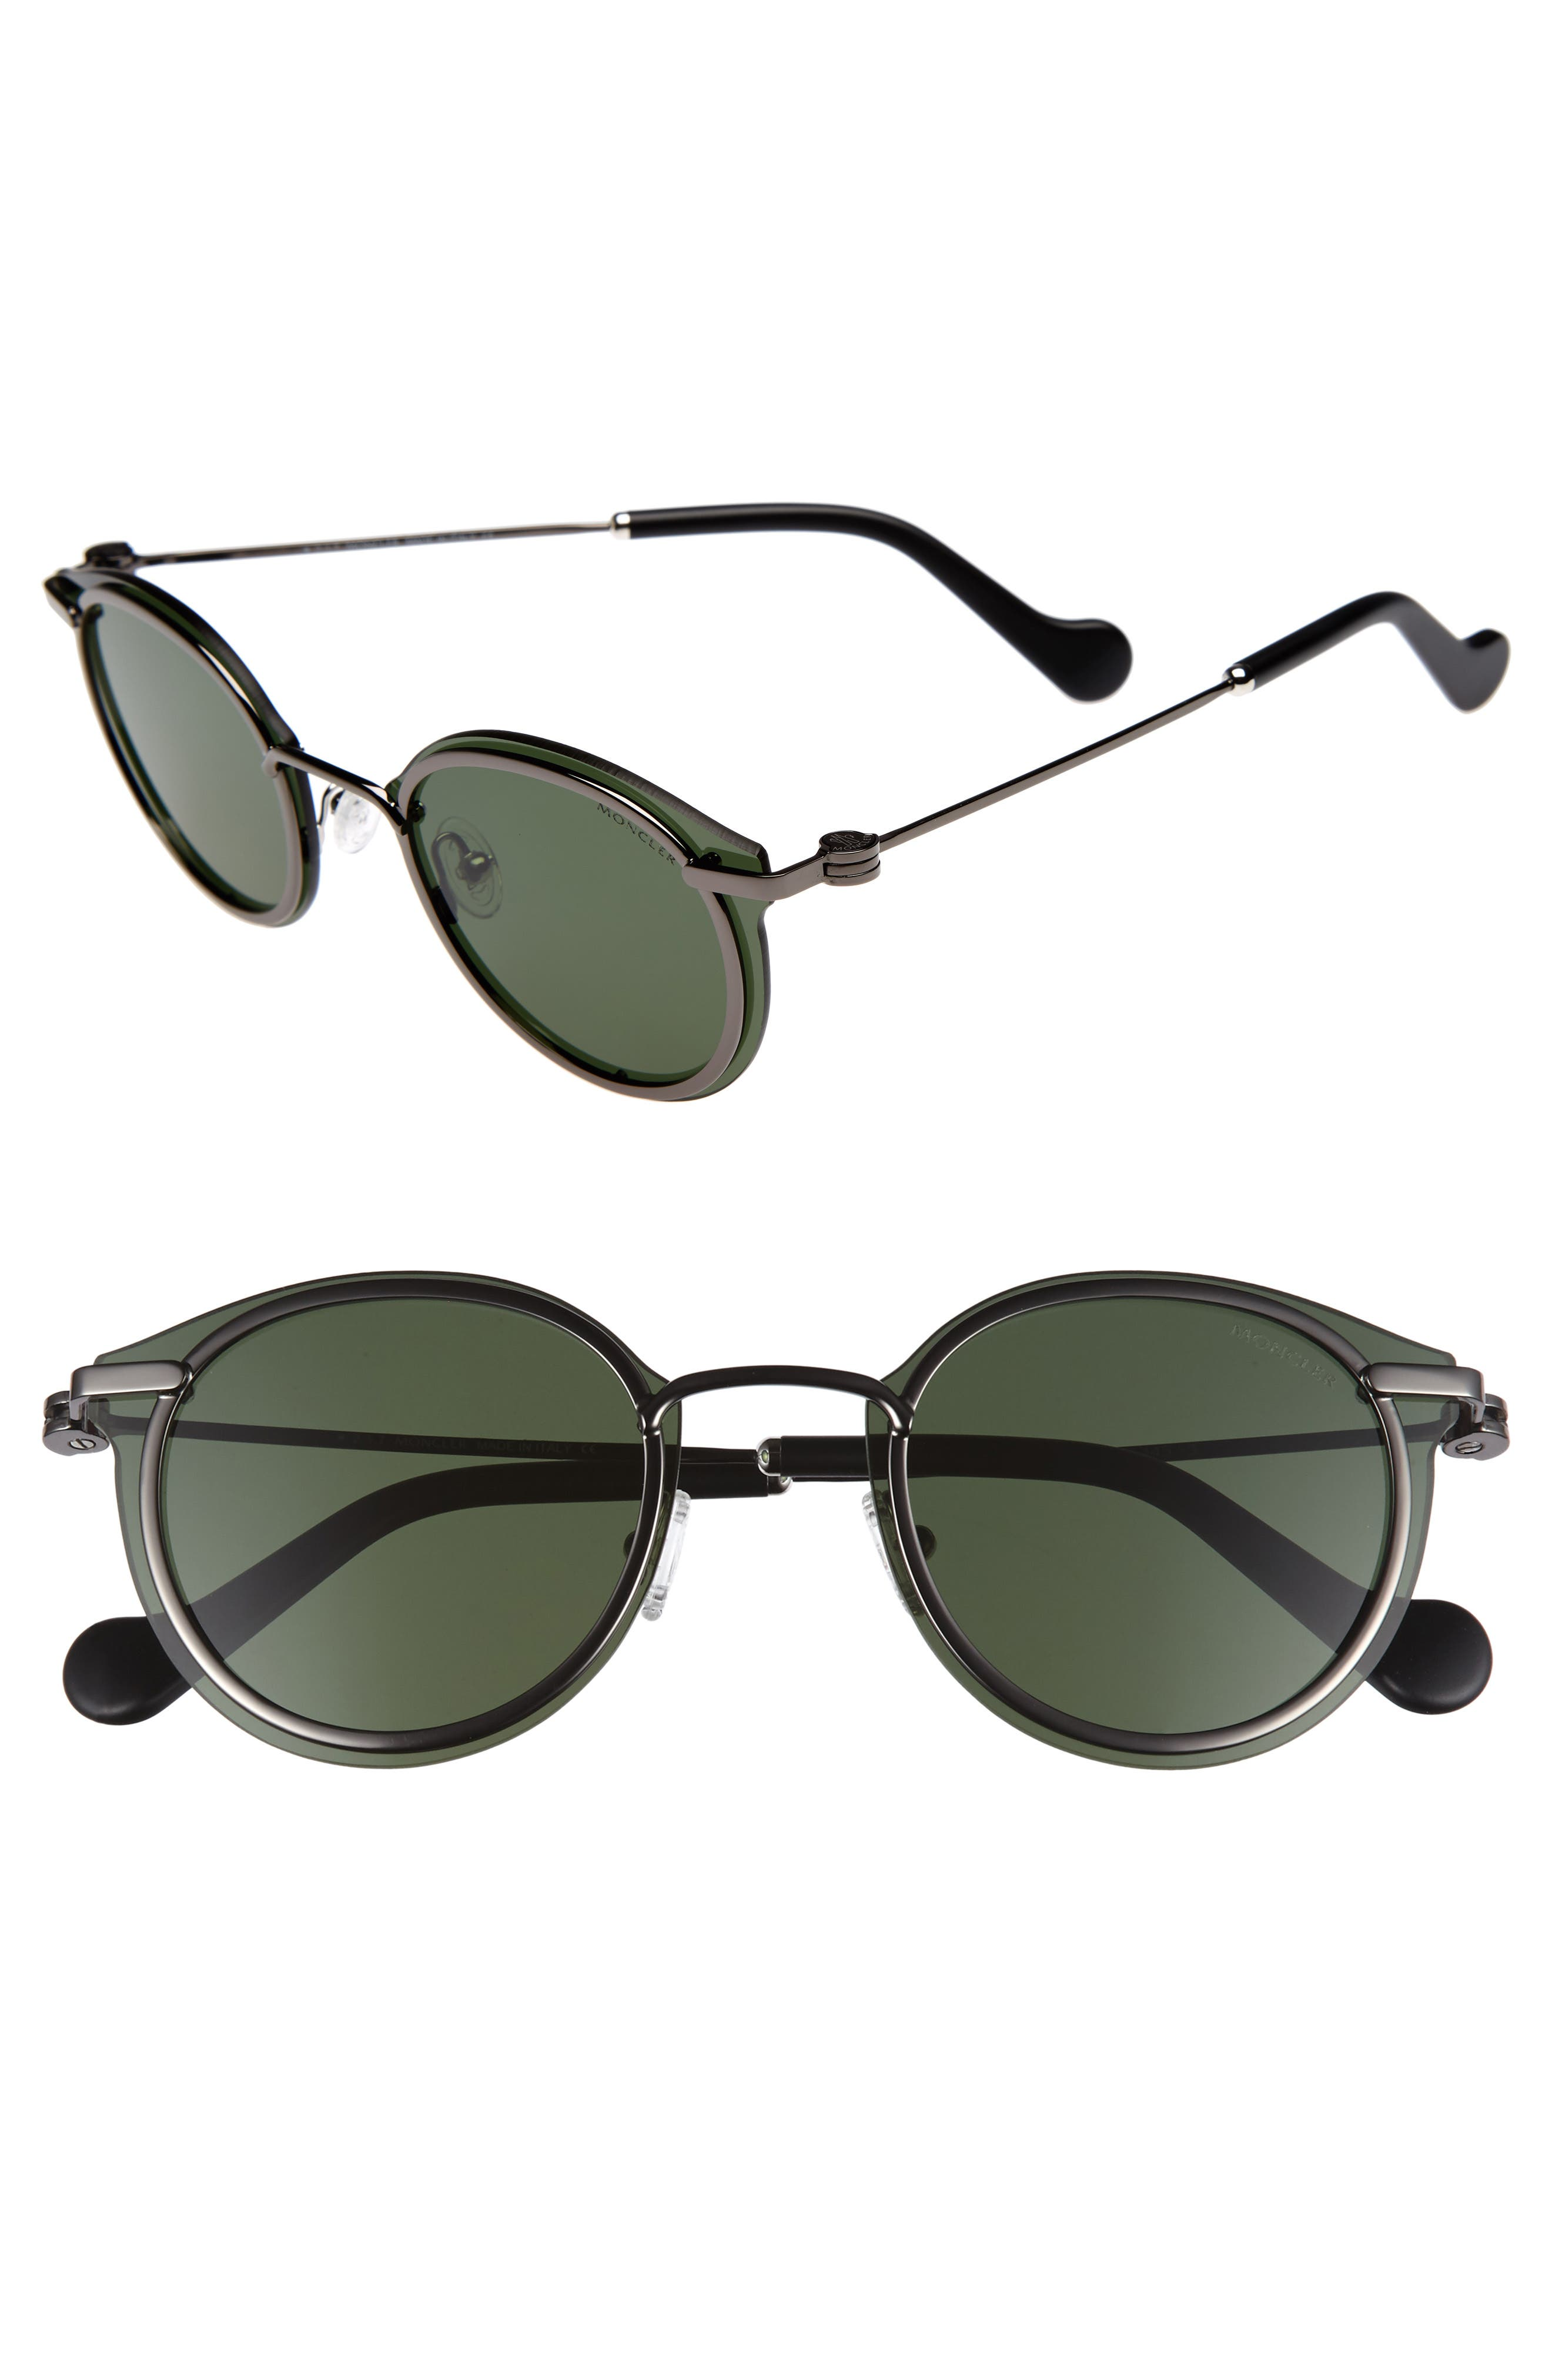 58mm Mirrored Round Sunglasses,                             Main thumbnail 1, color,                             Shiny Gunmetal/ Green